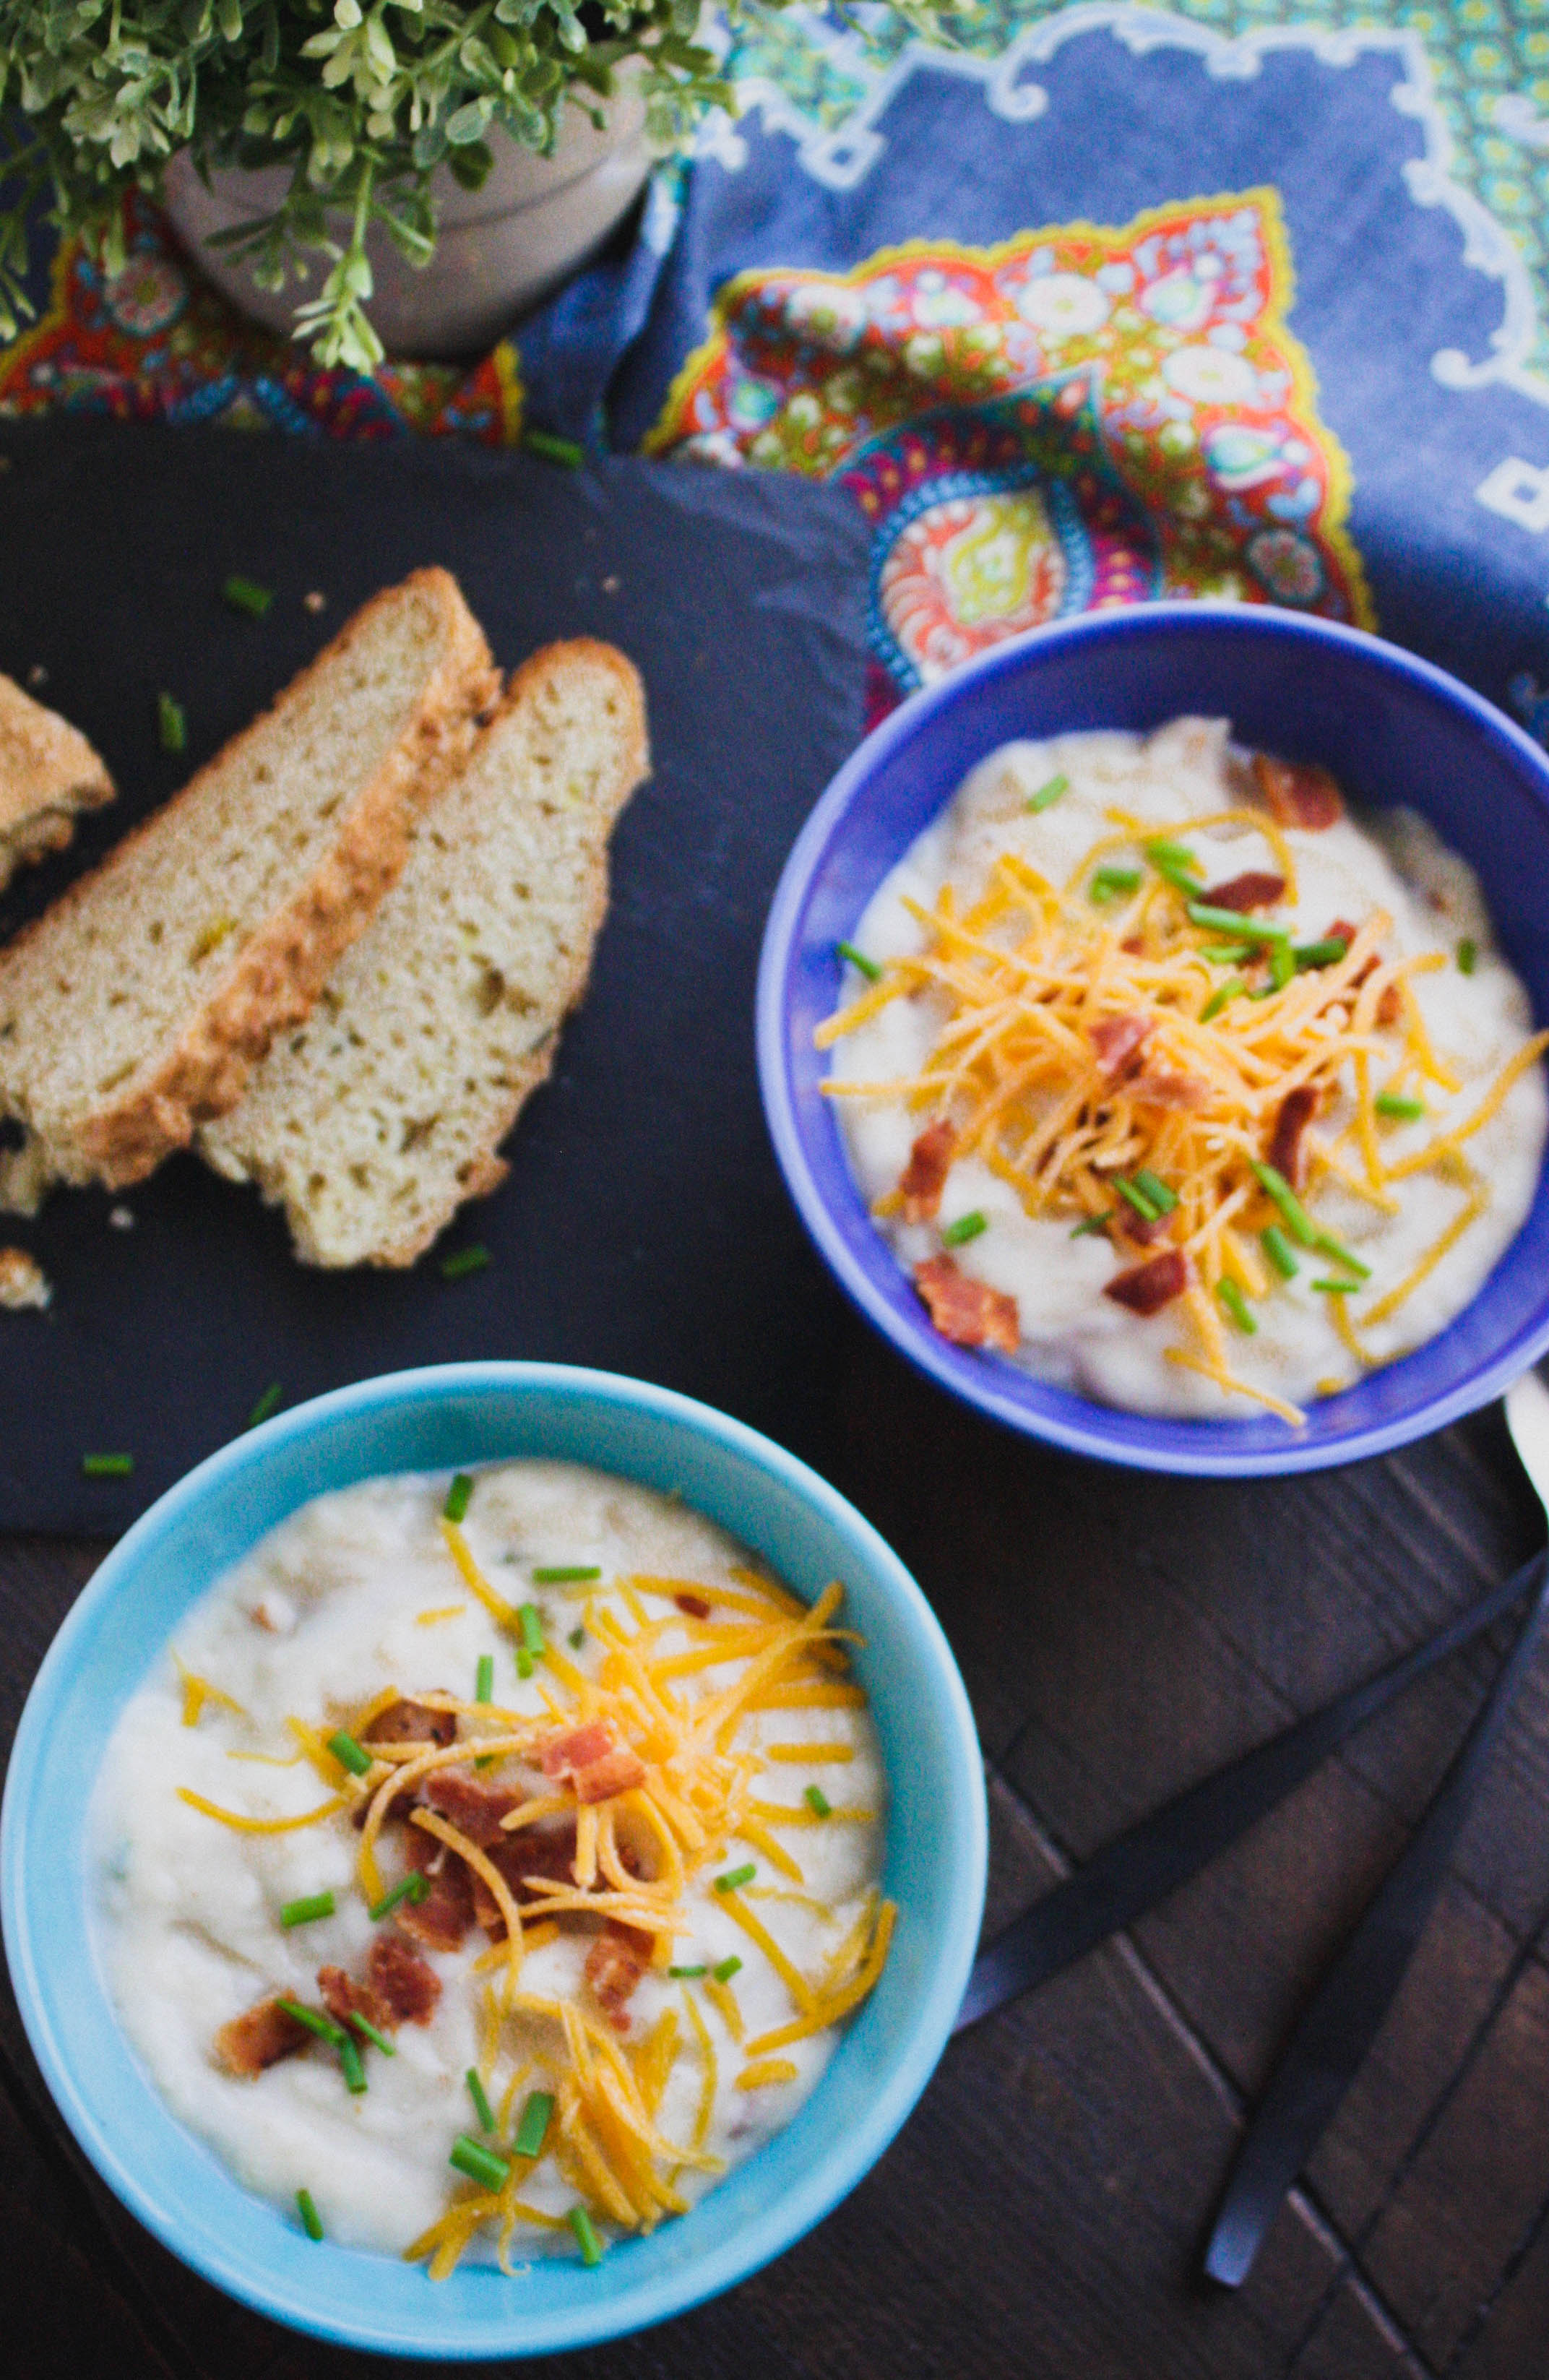 Make a batch of Loaded Baked Potato Soup on a chilly day. Loaded Baked Potato Soup is hearty and full of flavor!